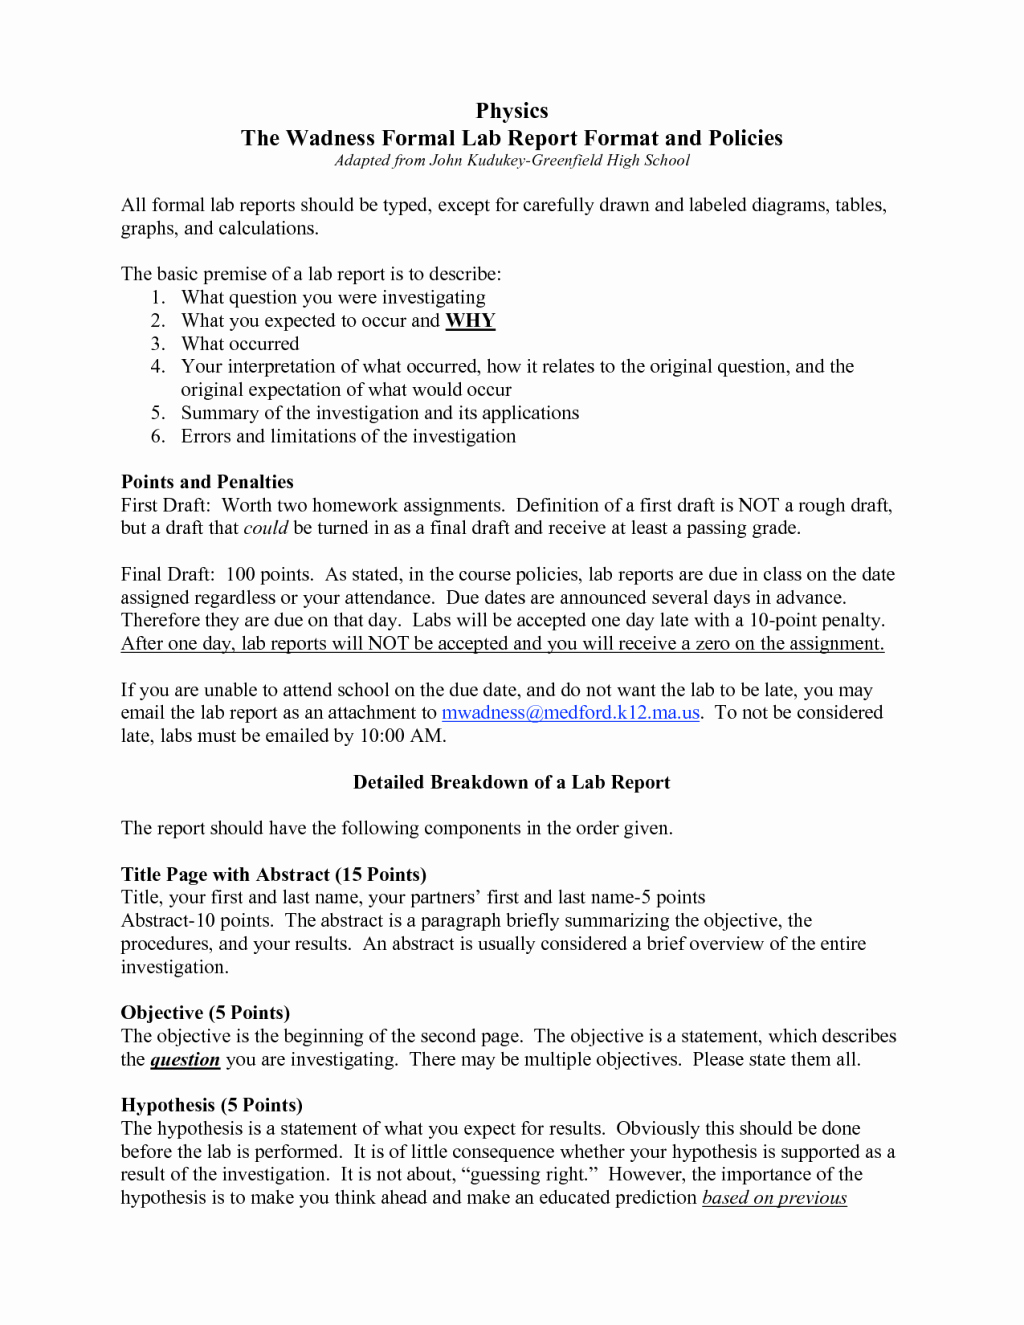 Formal Lab Report Template Luxury formal Lab Report Template Physics Biological Science